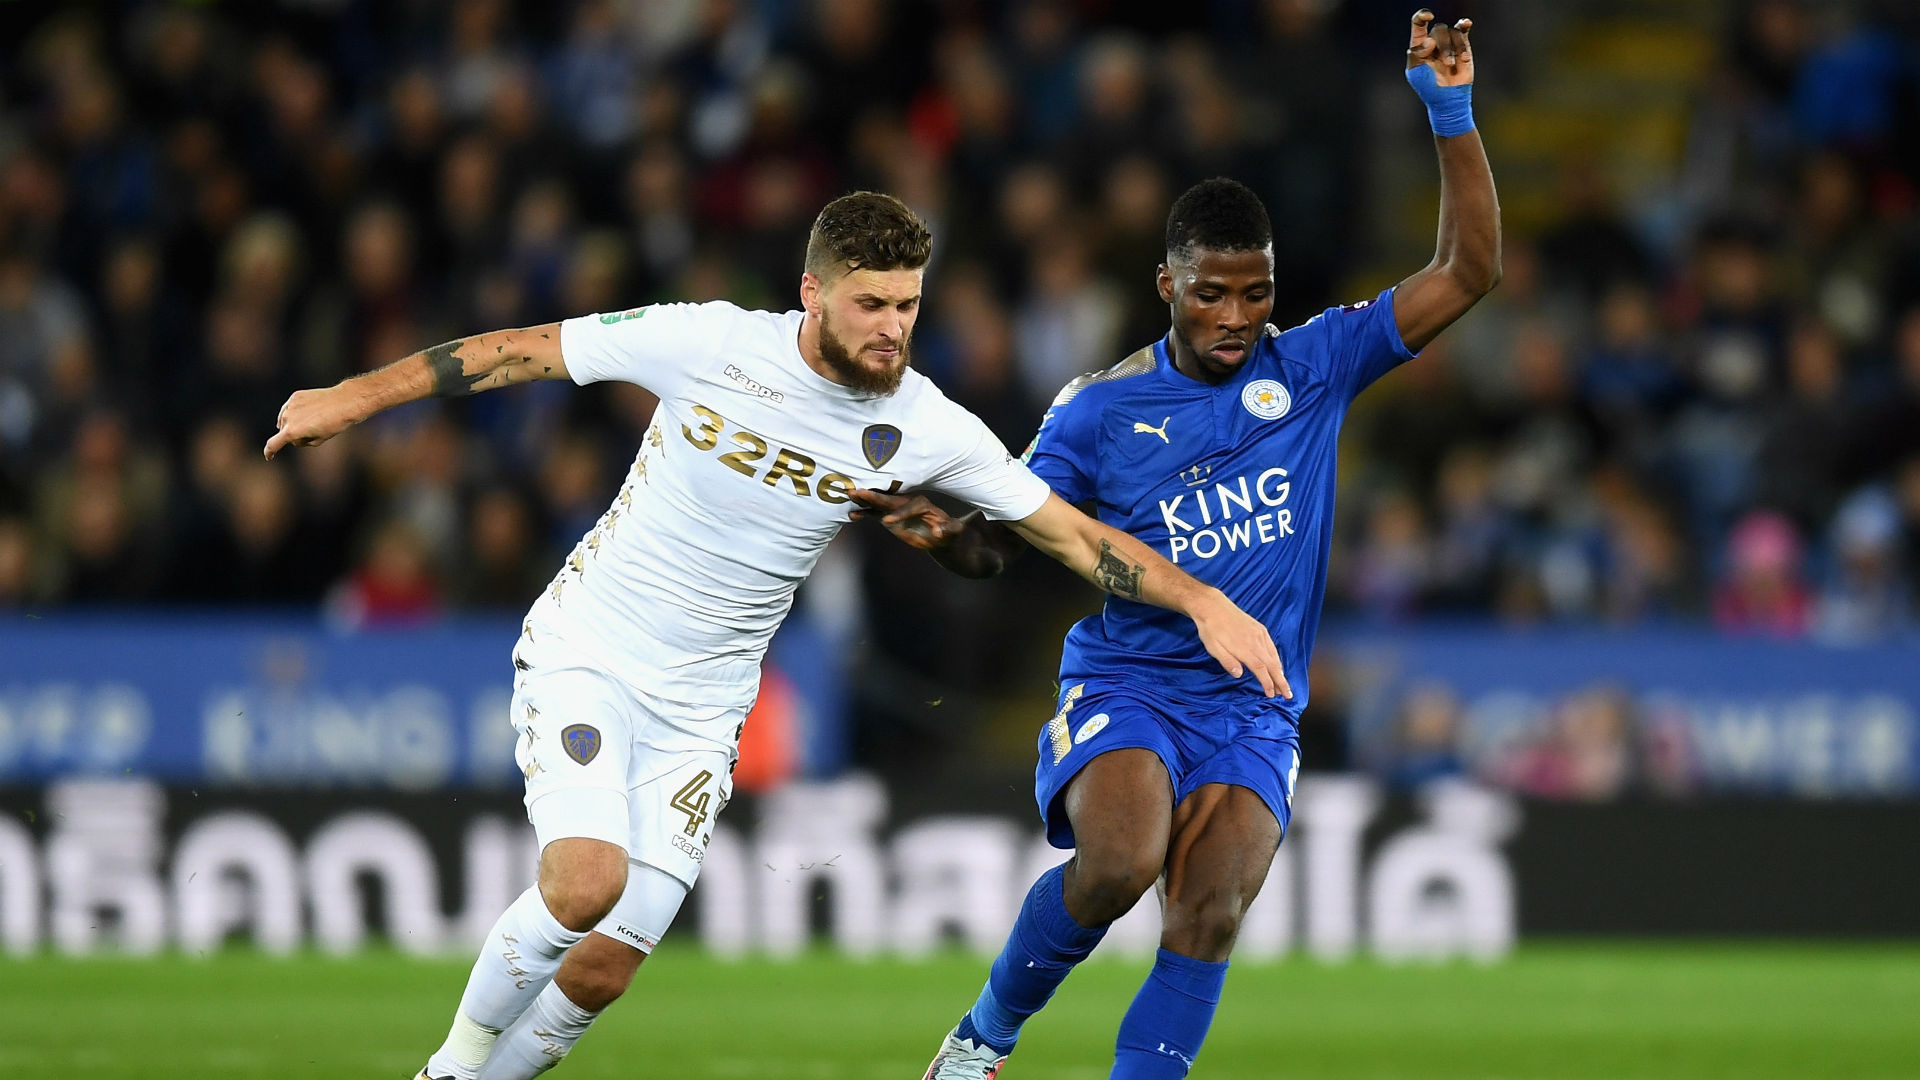 Claude Puel: 'Kelechi Iheanacho staying put at Leicester'